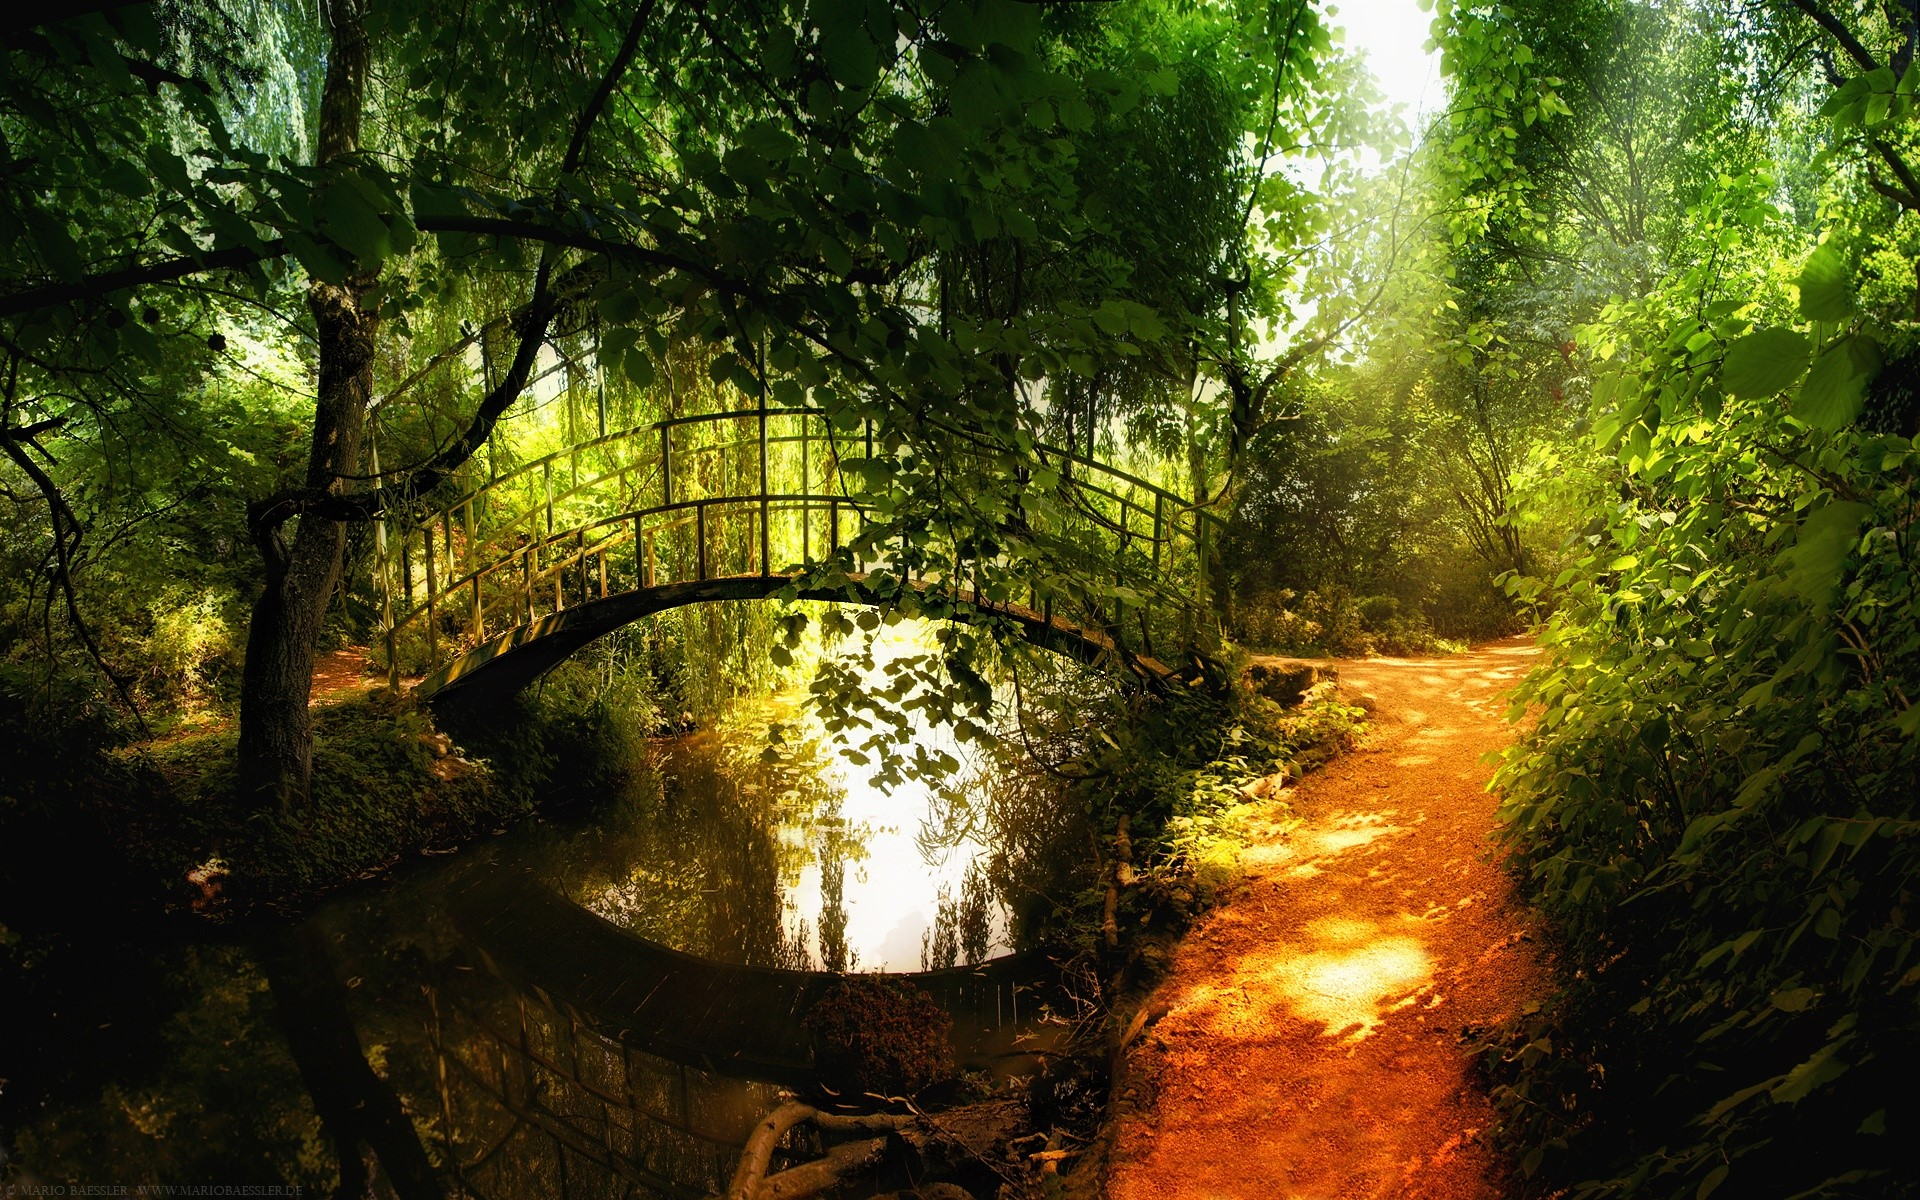 Forest path bridge